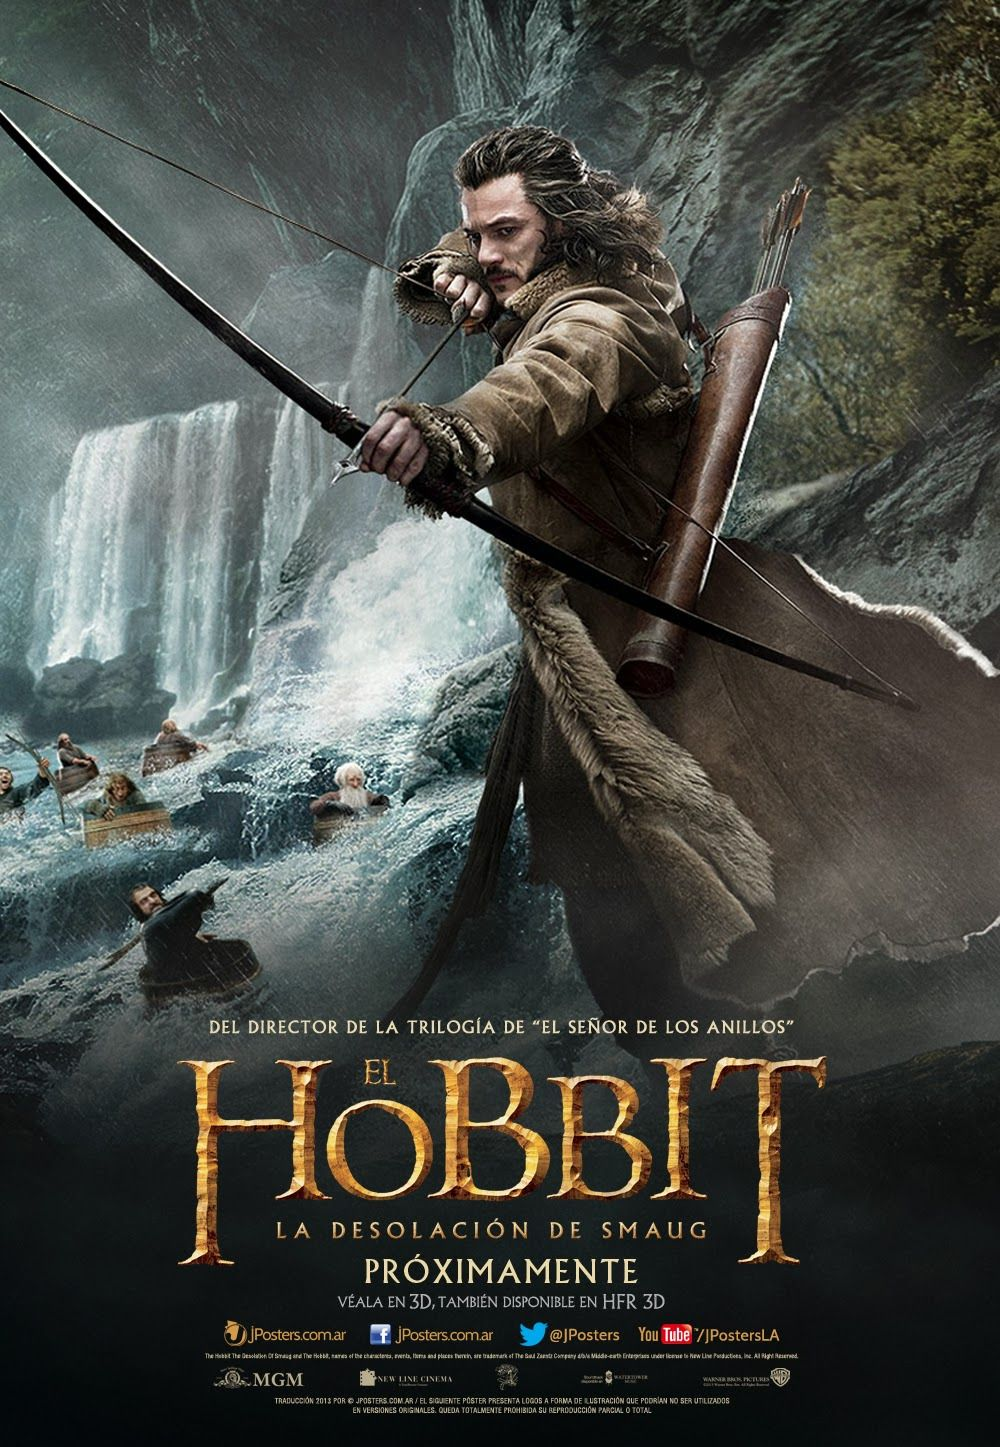 The Hobbit The Desolation Of Smaug 2013 The Hobbit Desolation Of Smaug The Hobbit Movies